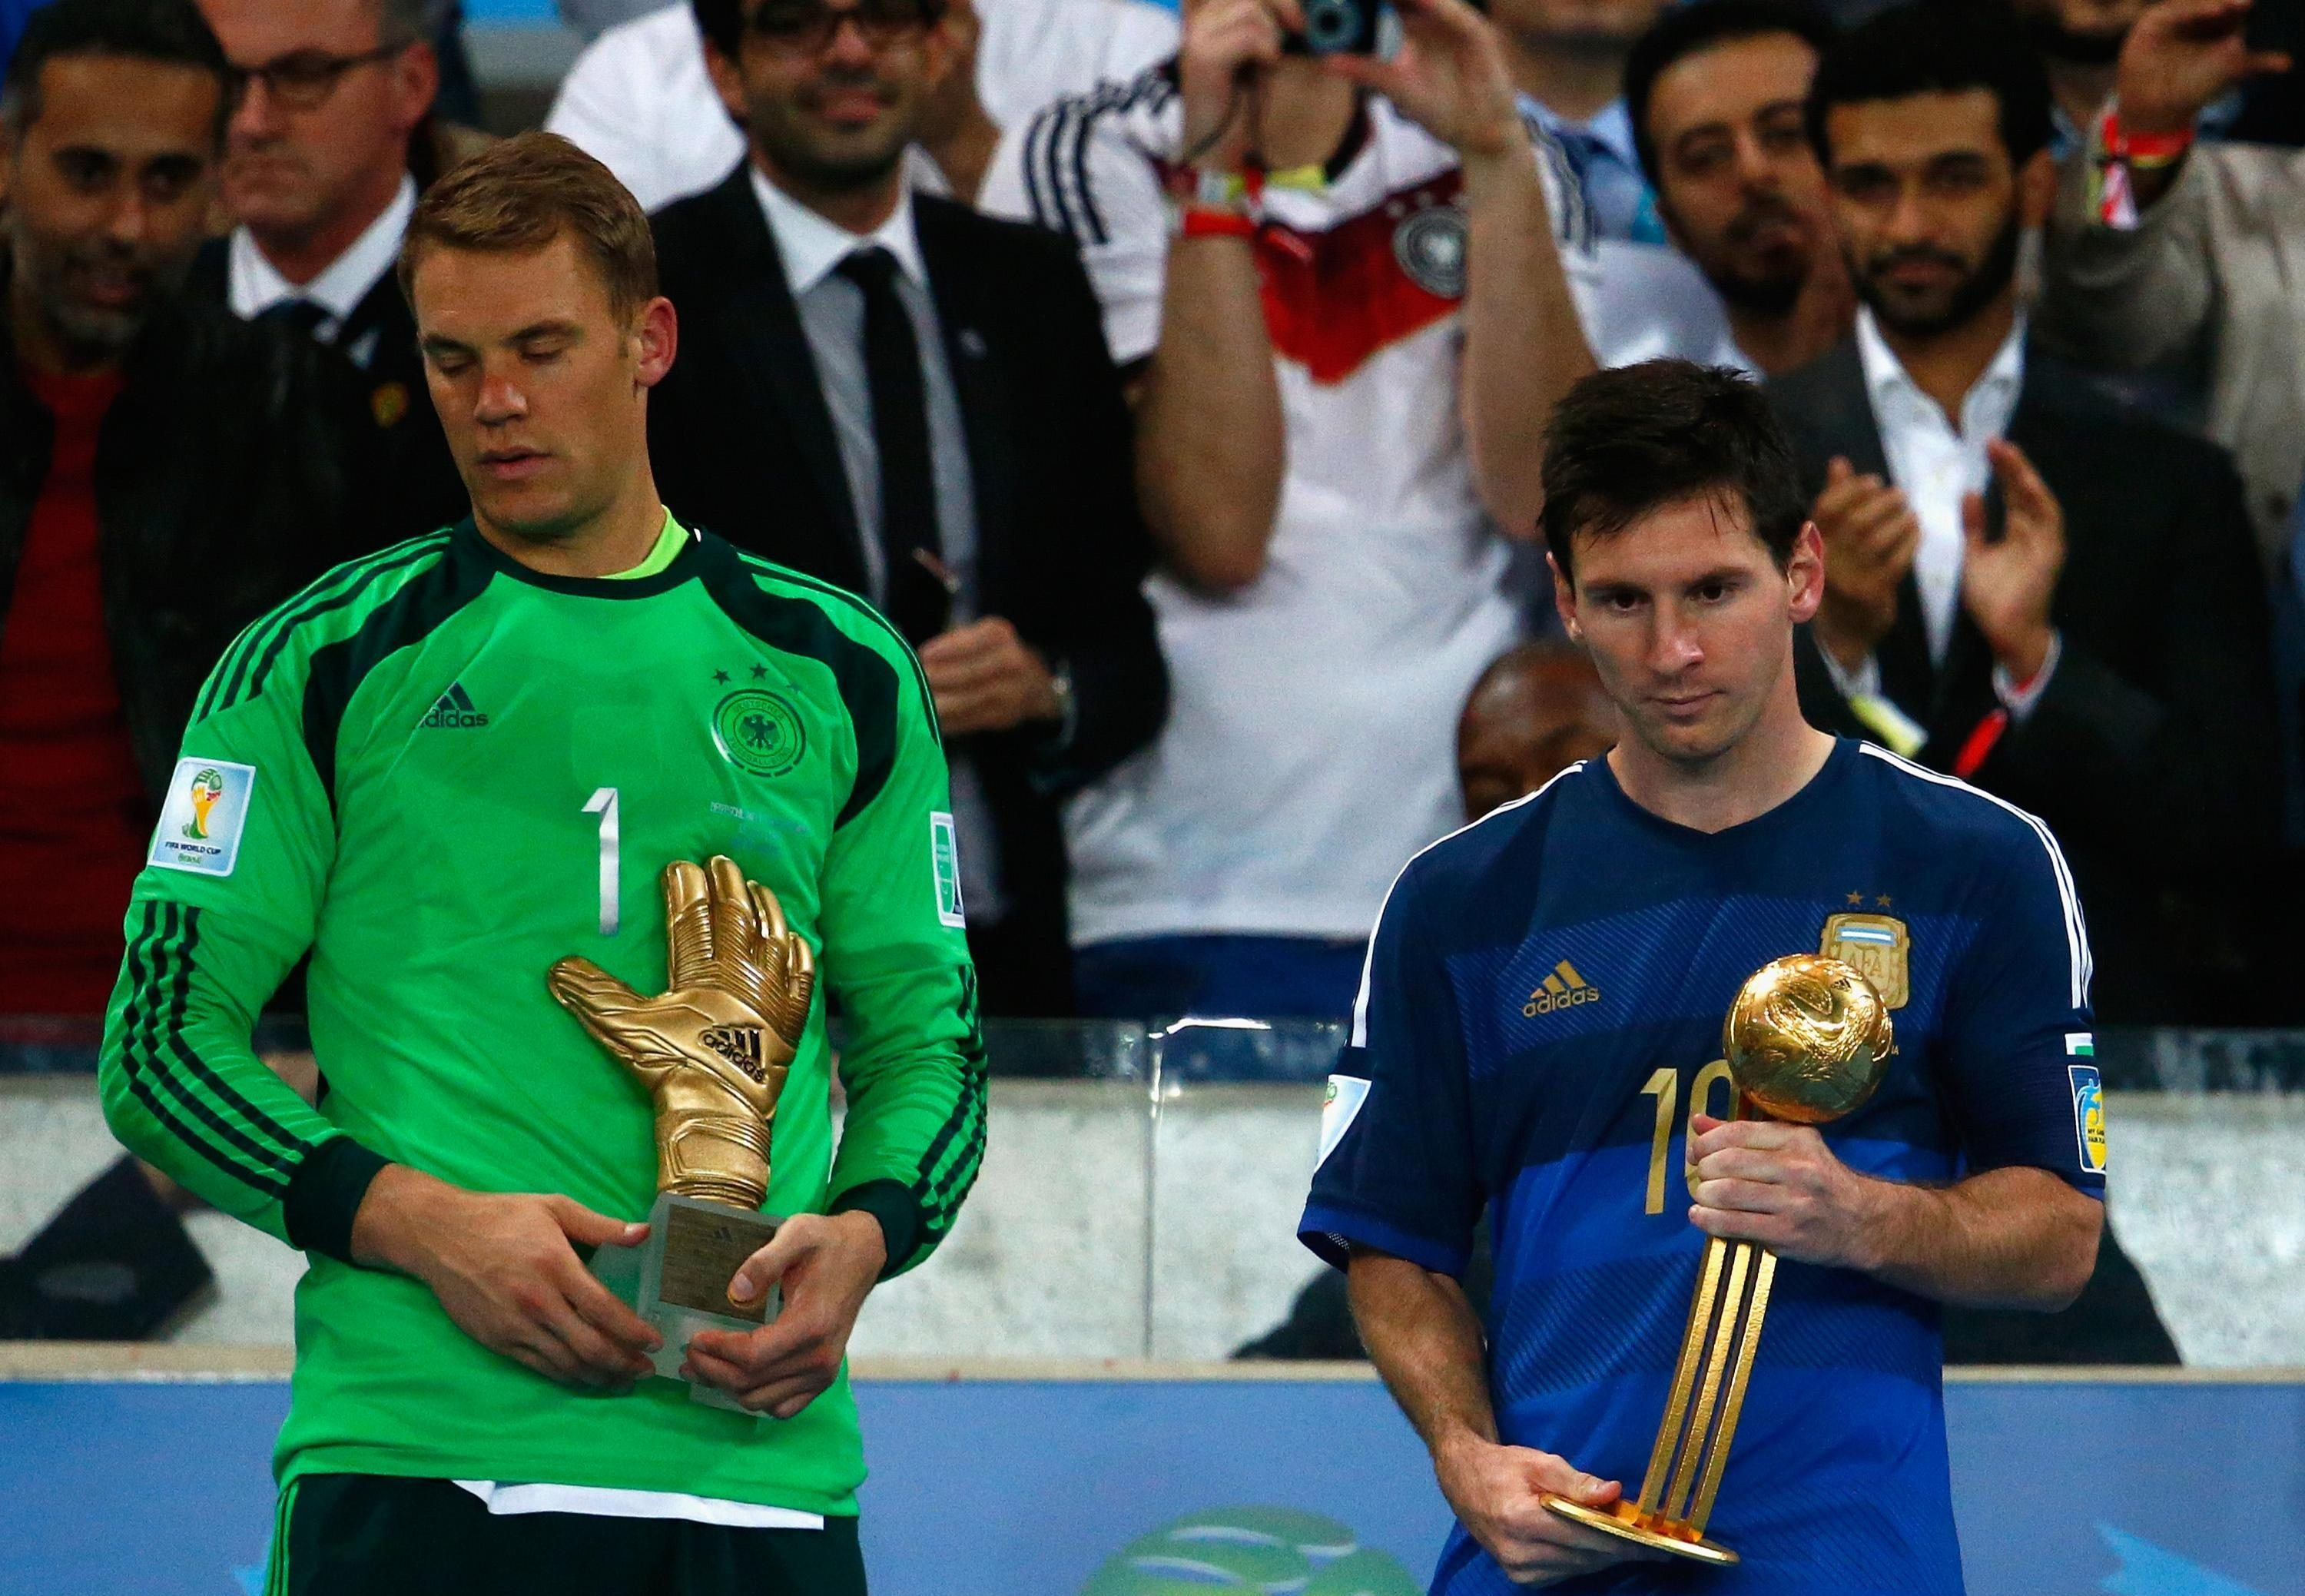 Messi got his hands on a trophy despite suffering final heartbreak against Germany